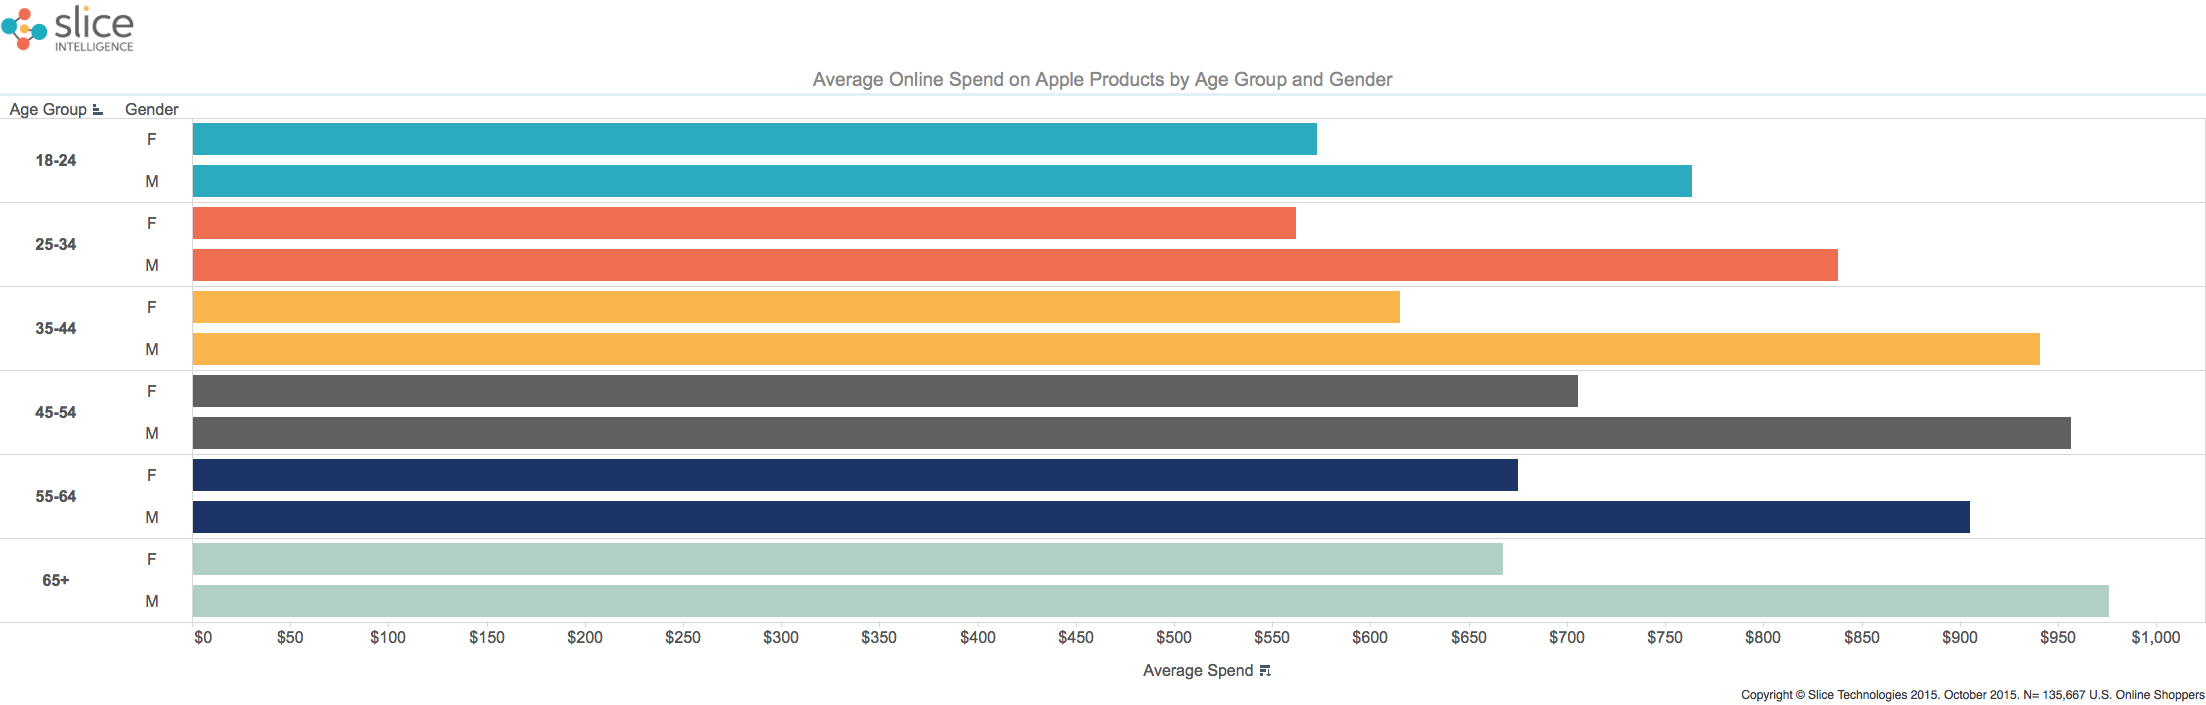 Apple-Online-Sales-by-Age-group-and-Gender